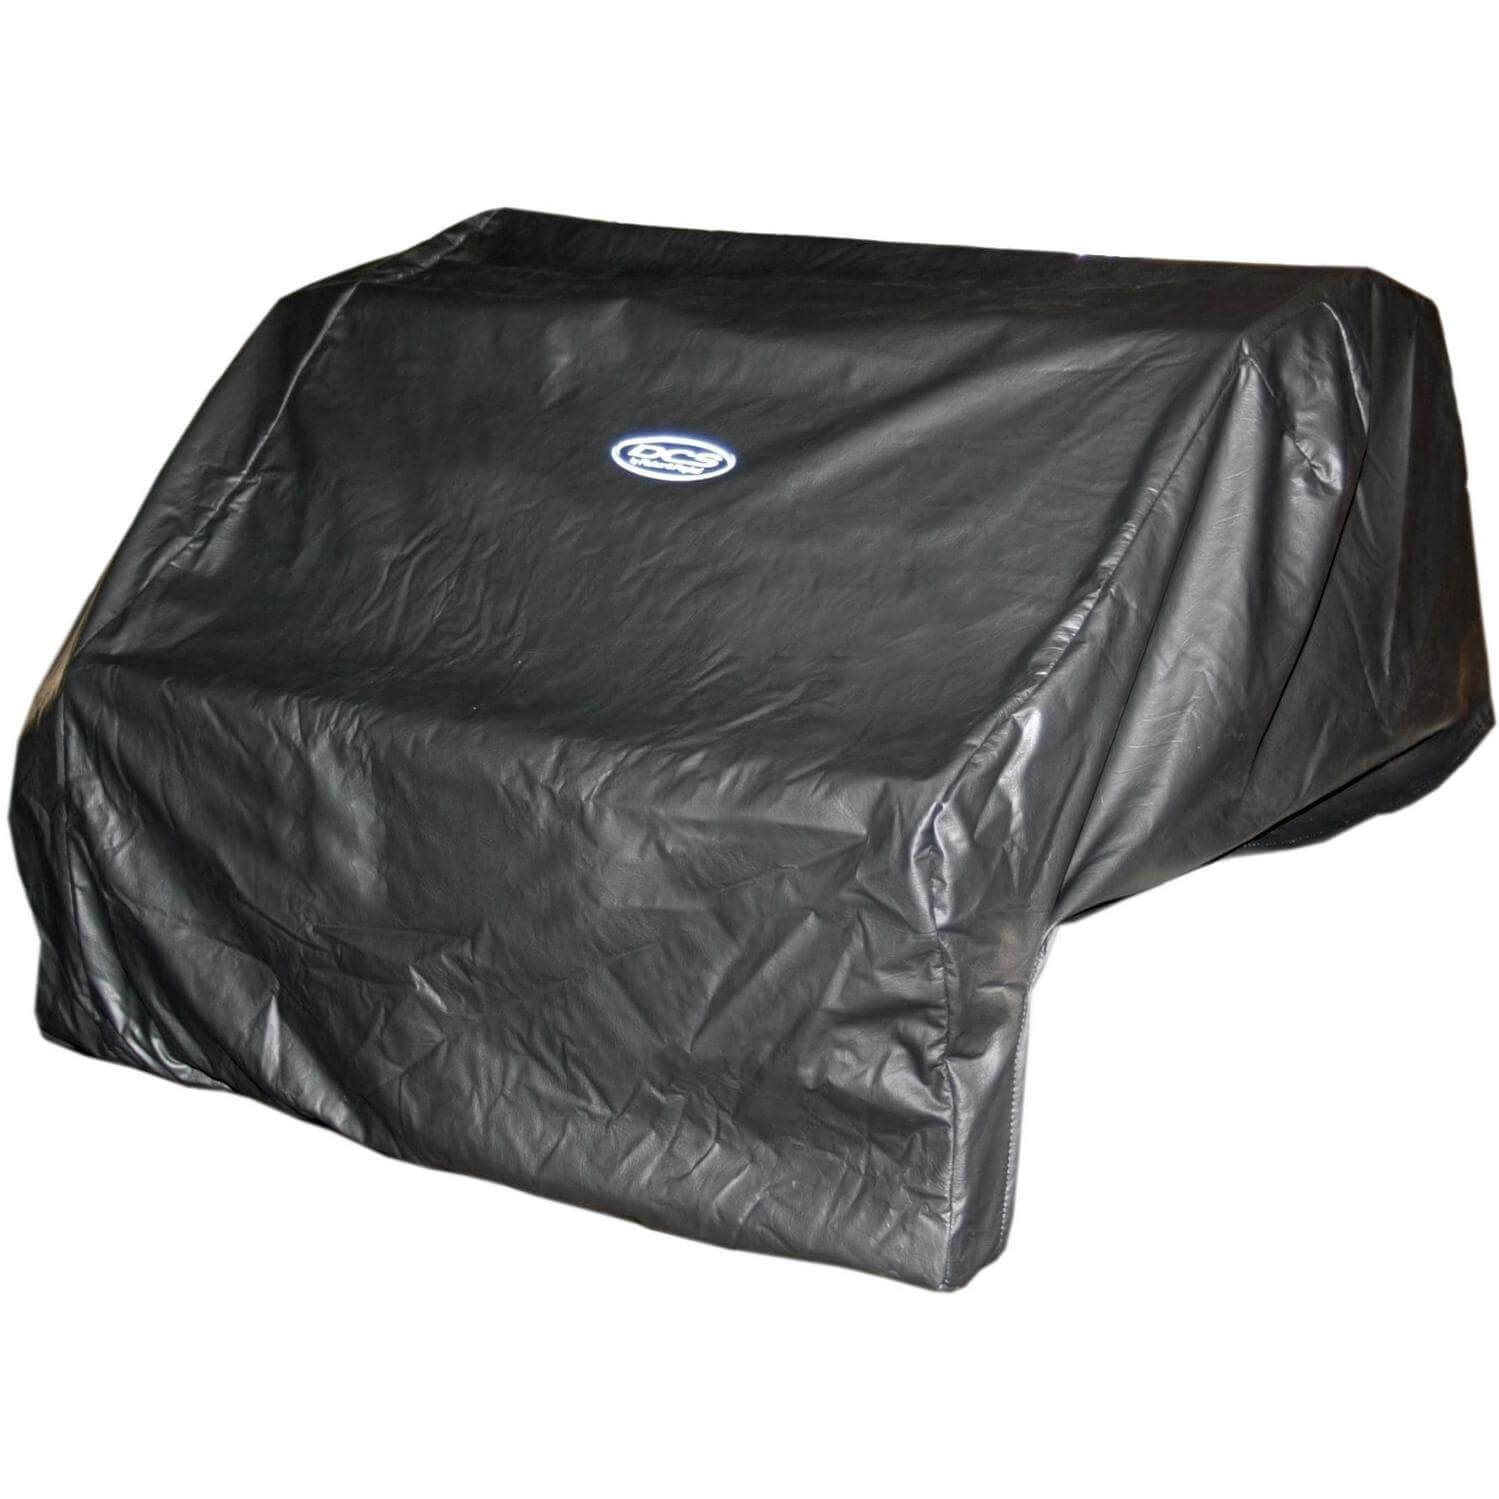 Dcs Liberty Built In Grill Cover Bbq Grill People